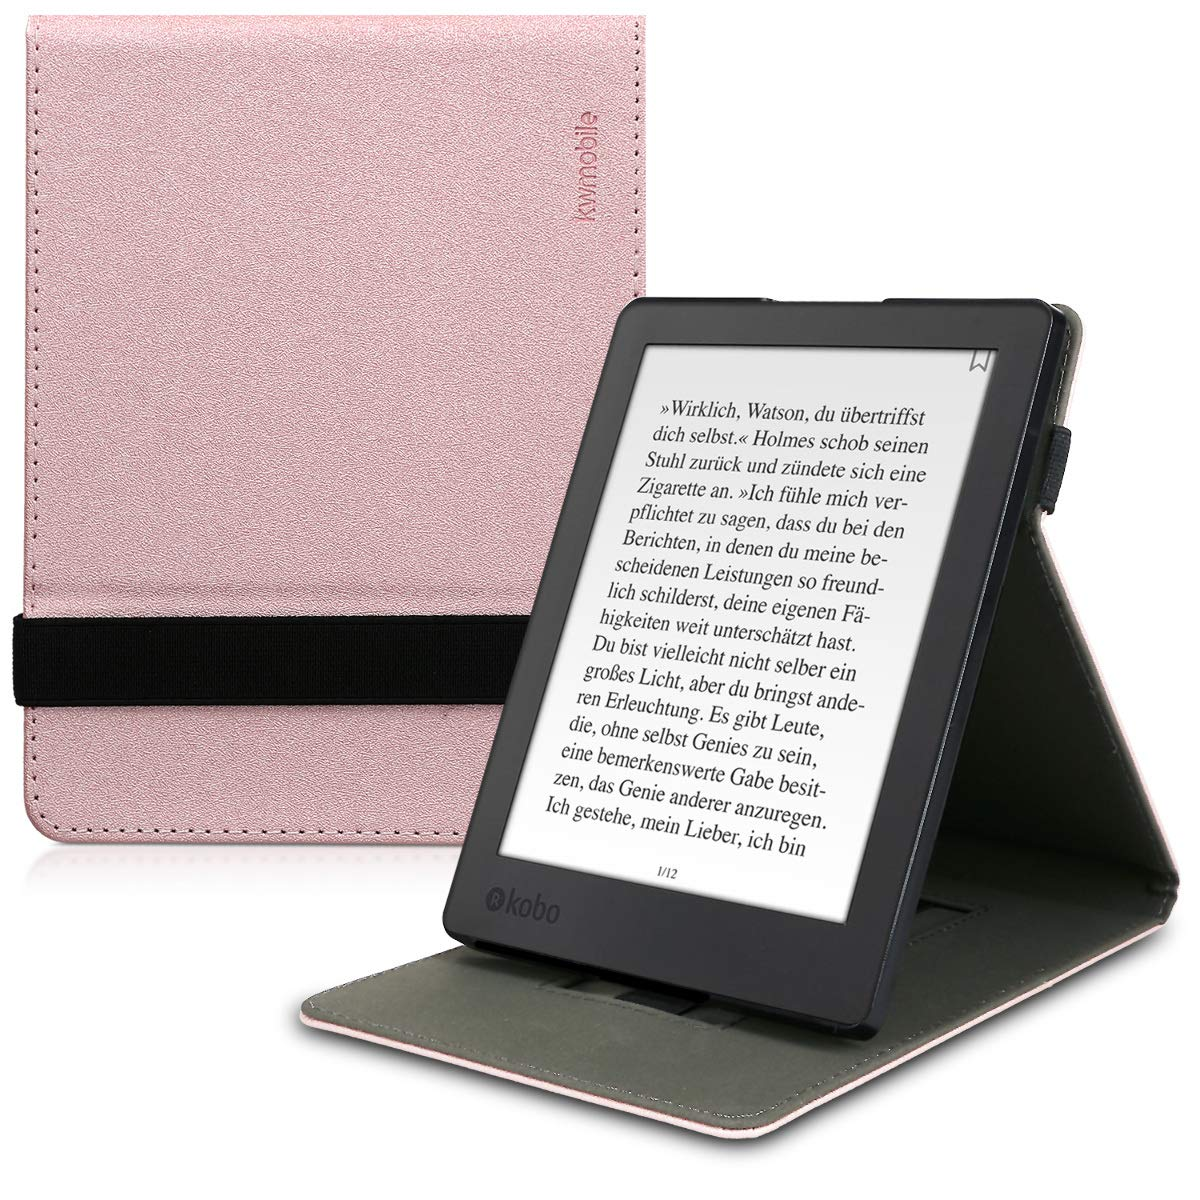 kwmobile Cover for Kobo Aura H2O Edition 2 - PU Leather e-Reader Case with Built-in Hand Strap and Stand - Rose Gold KW-Commerce 45099.81_m001187